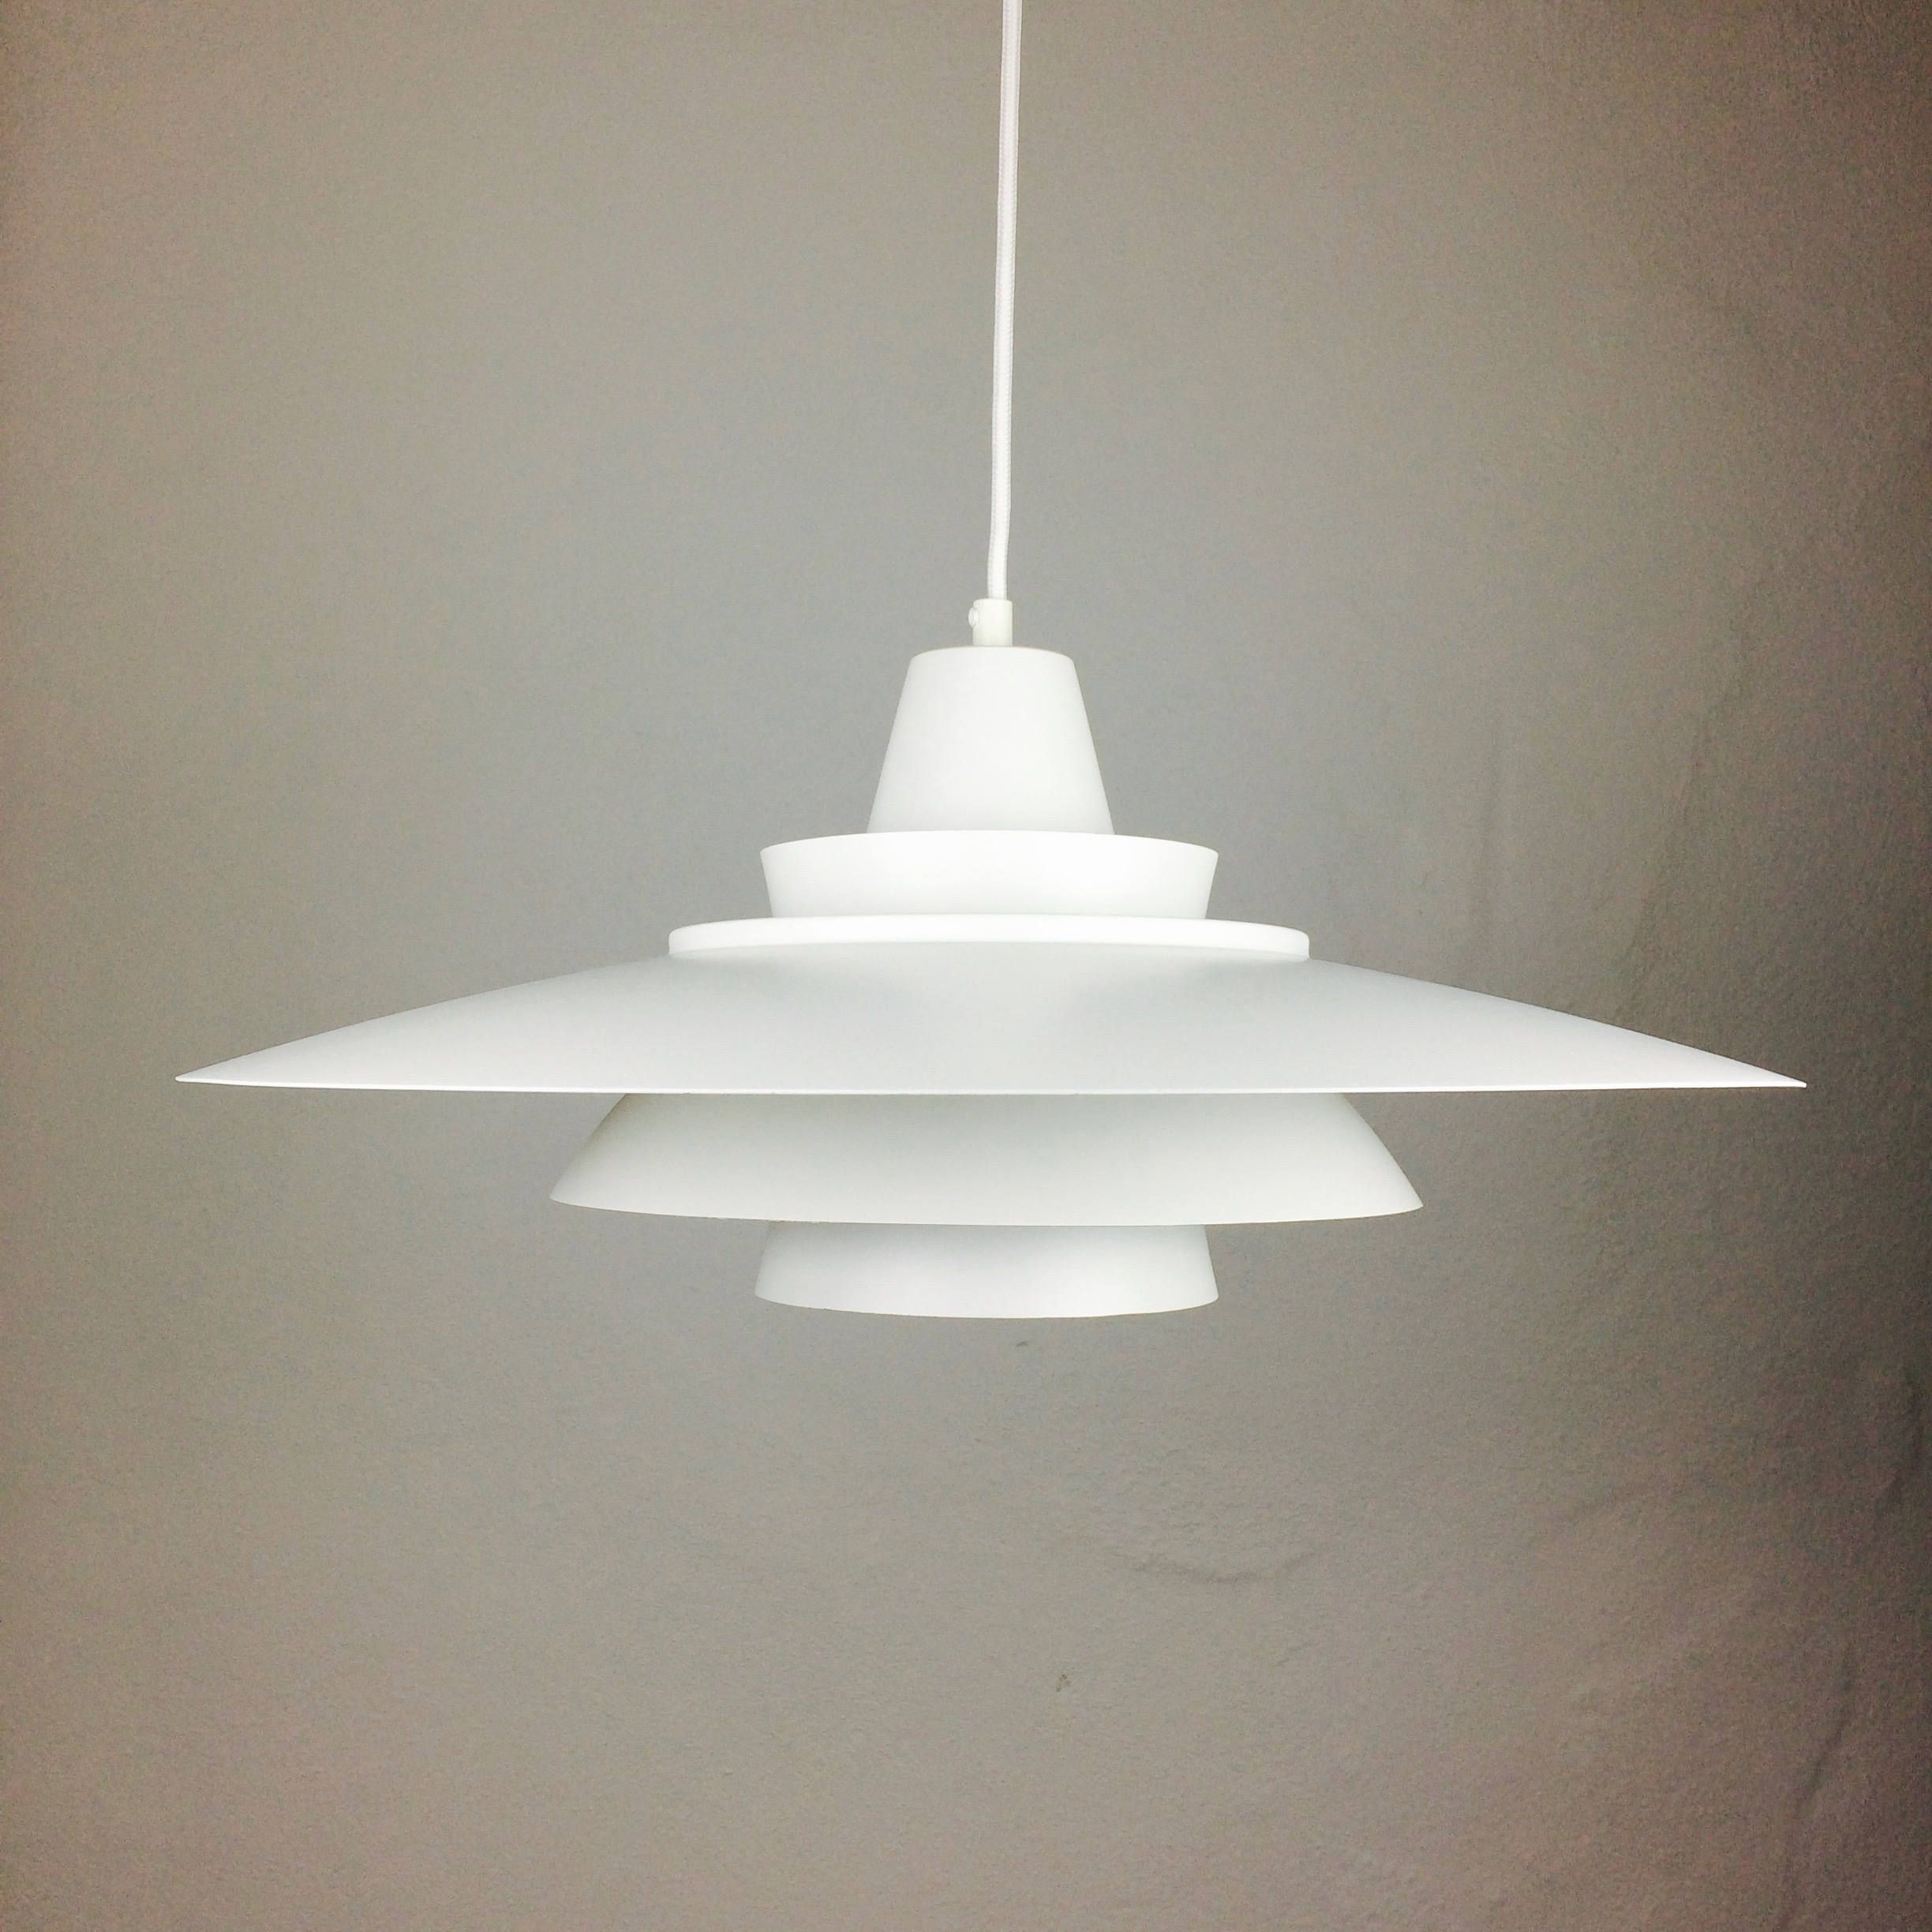 retro lighting. super light danish vintage design 70s mid century modern fixture retro lighting